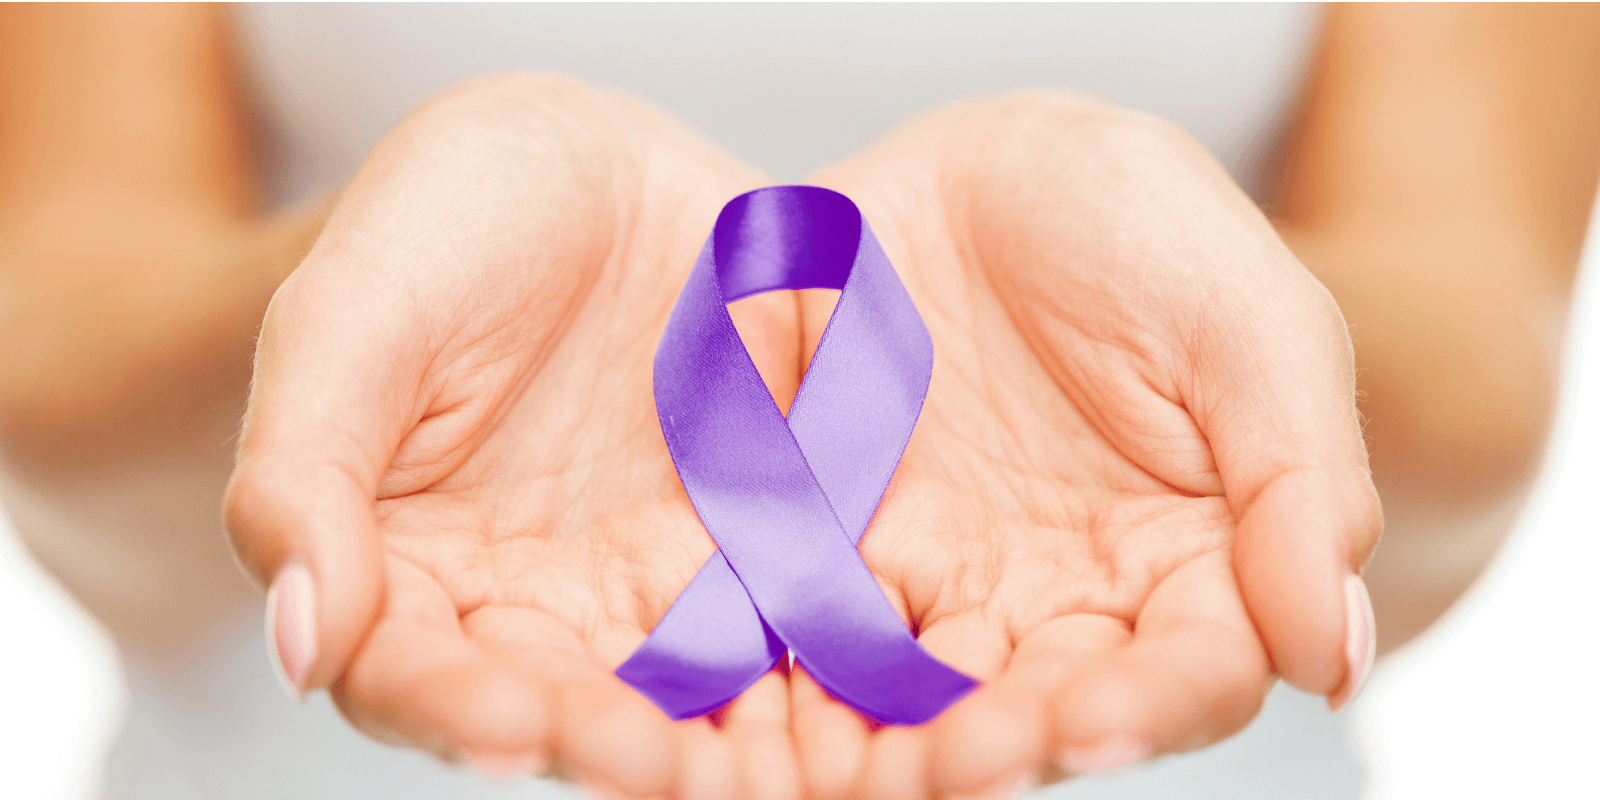 facts about lupus, what is lupus, statistics about lupus, lupus awareness